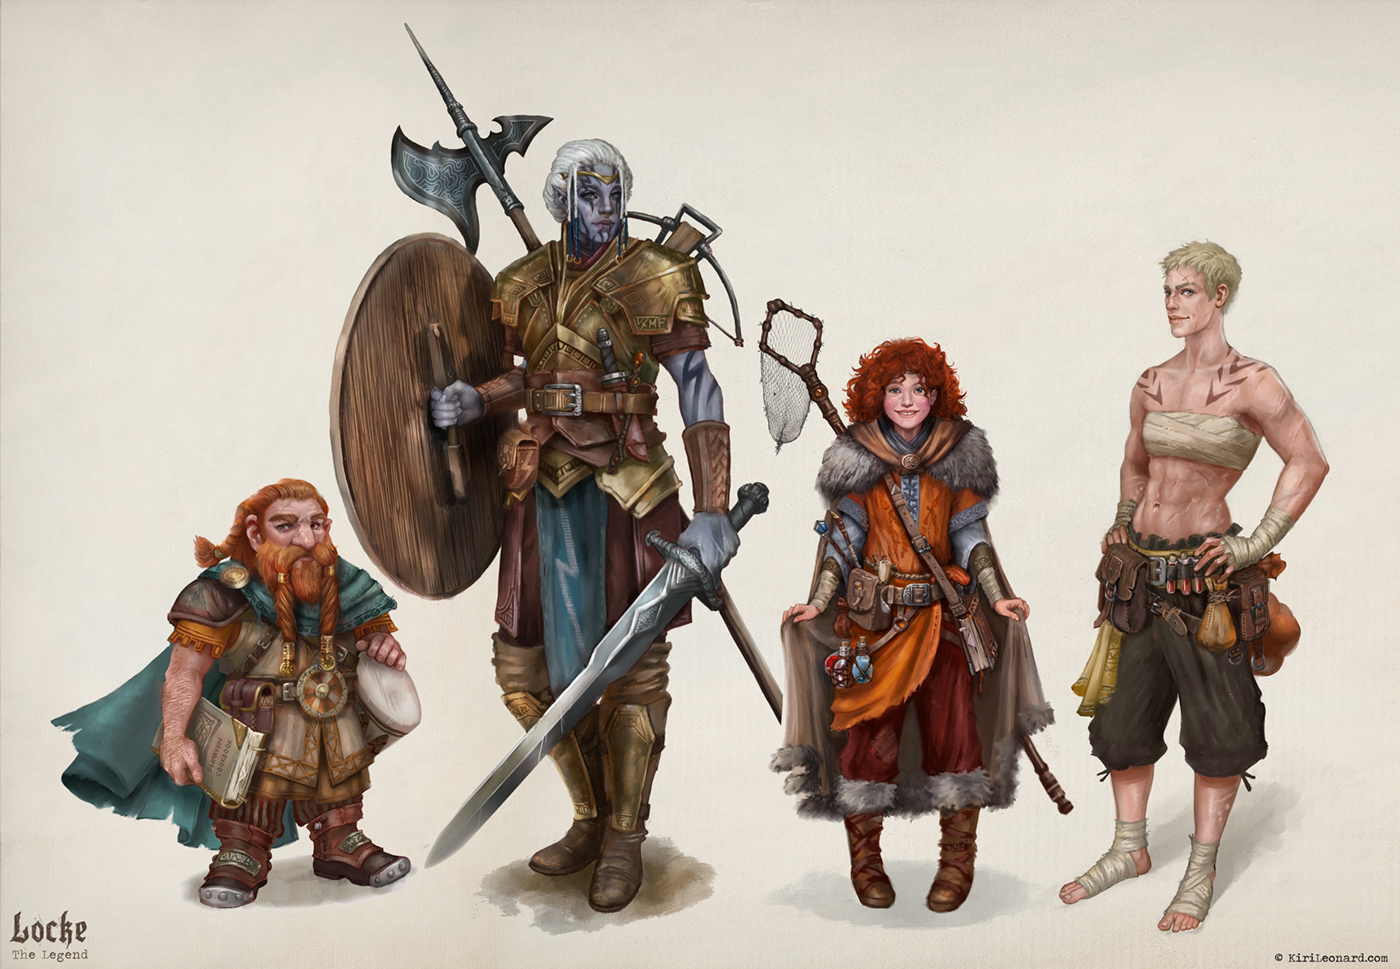 Locke the Legend: D&D Character Group Portrait